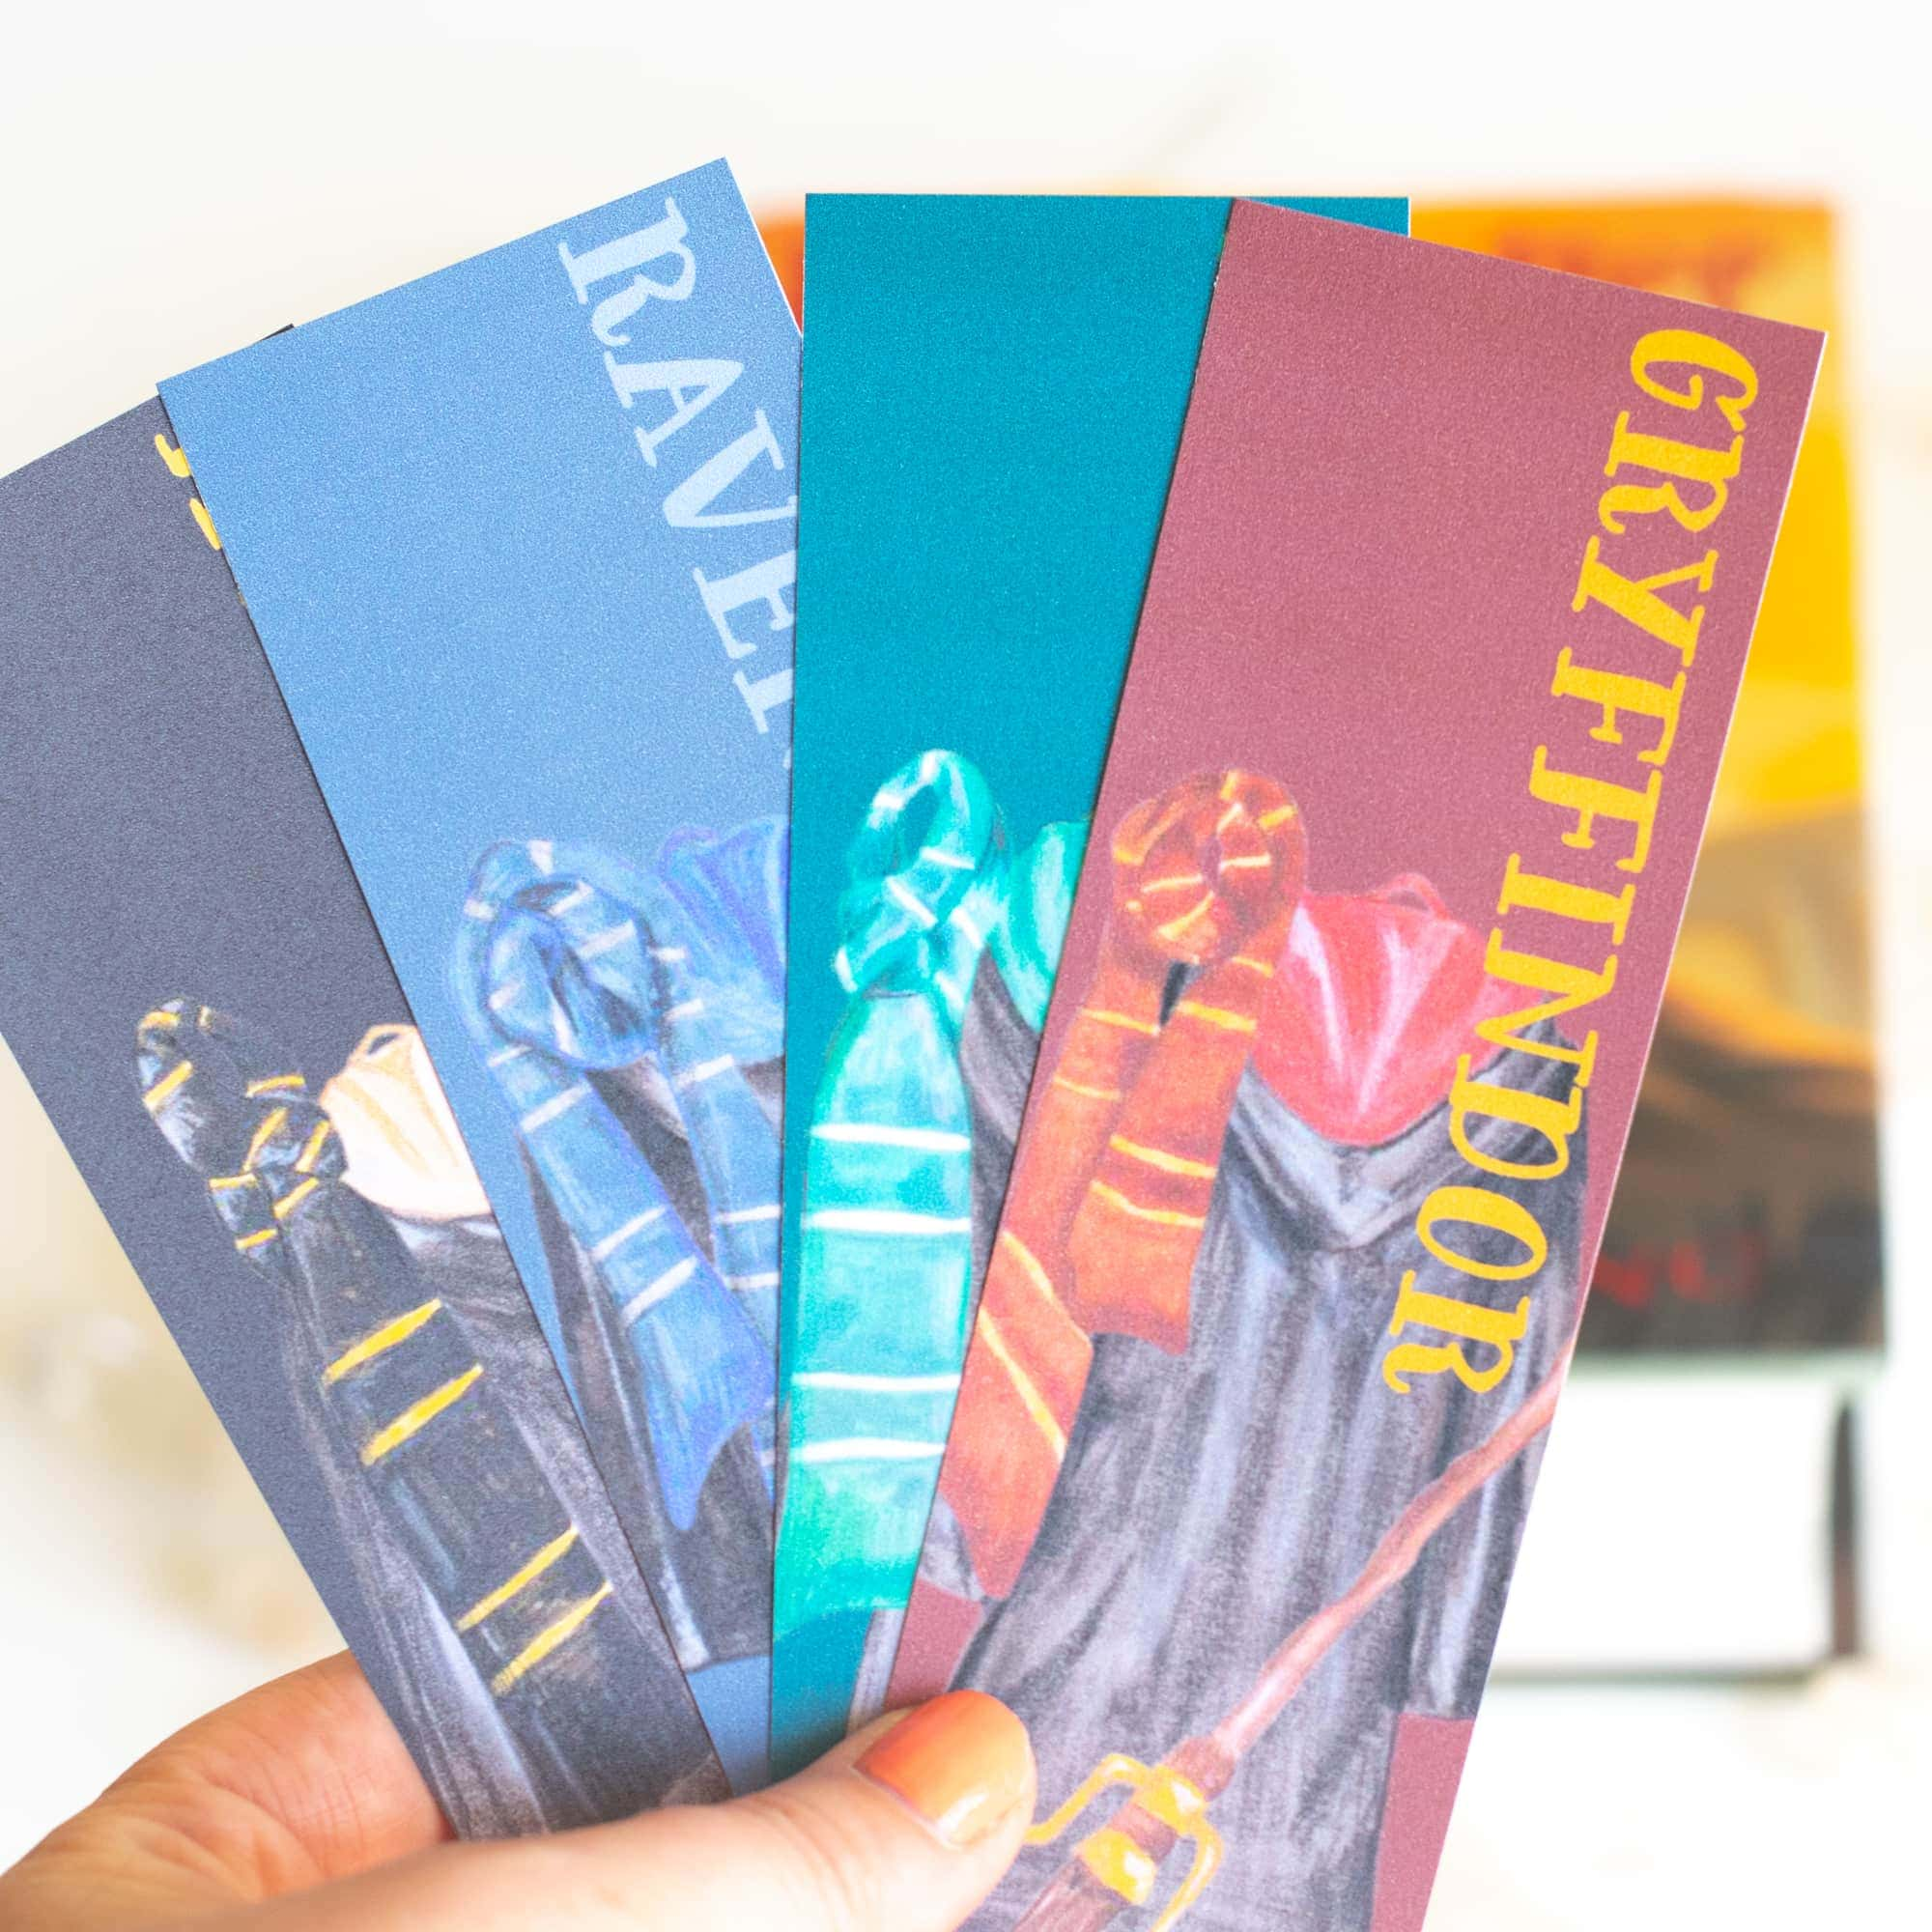 graphic regarding Printable Harry Potter Bookmarks named Printable Harry Potter Bookmarks - Carrie Elle